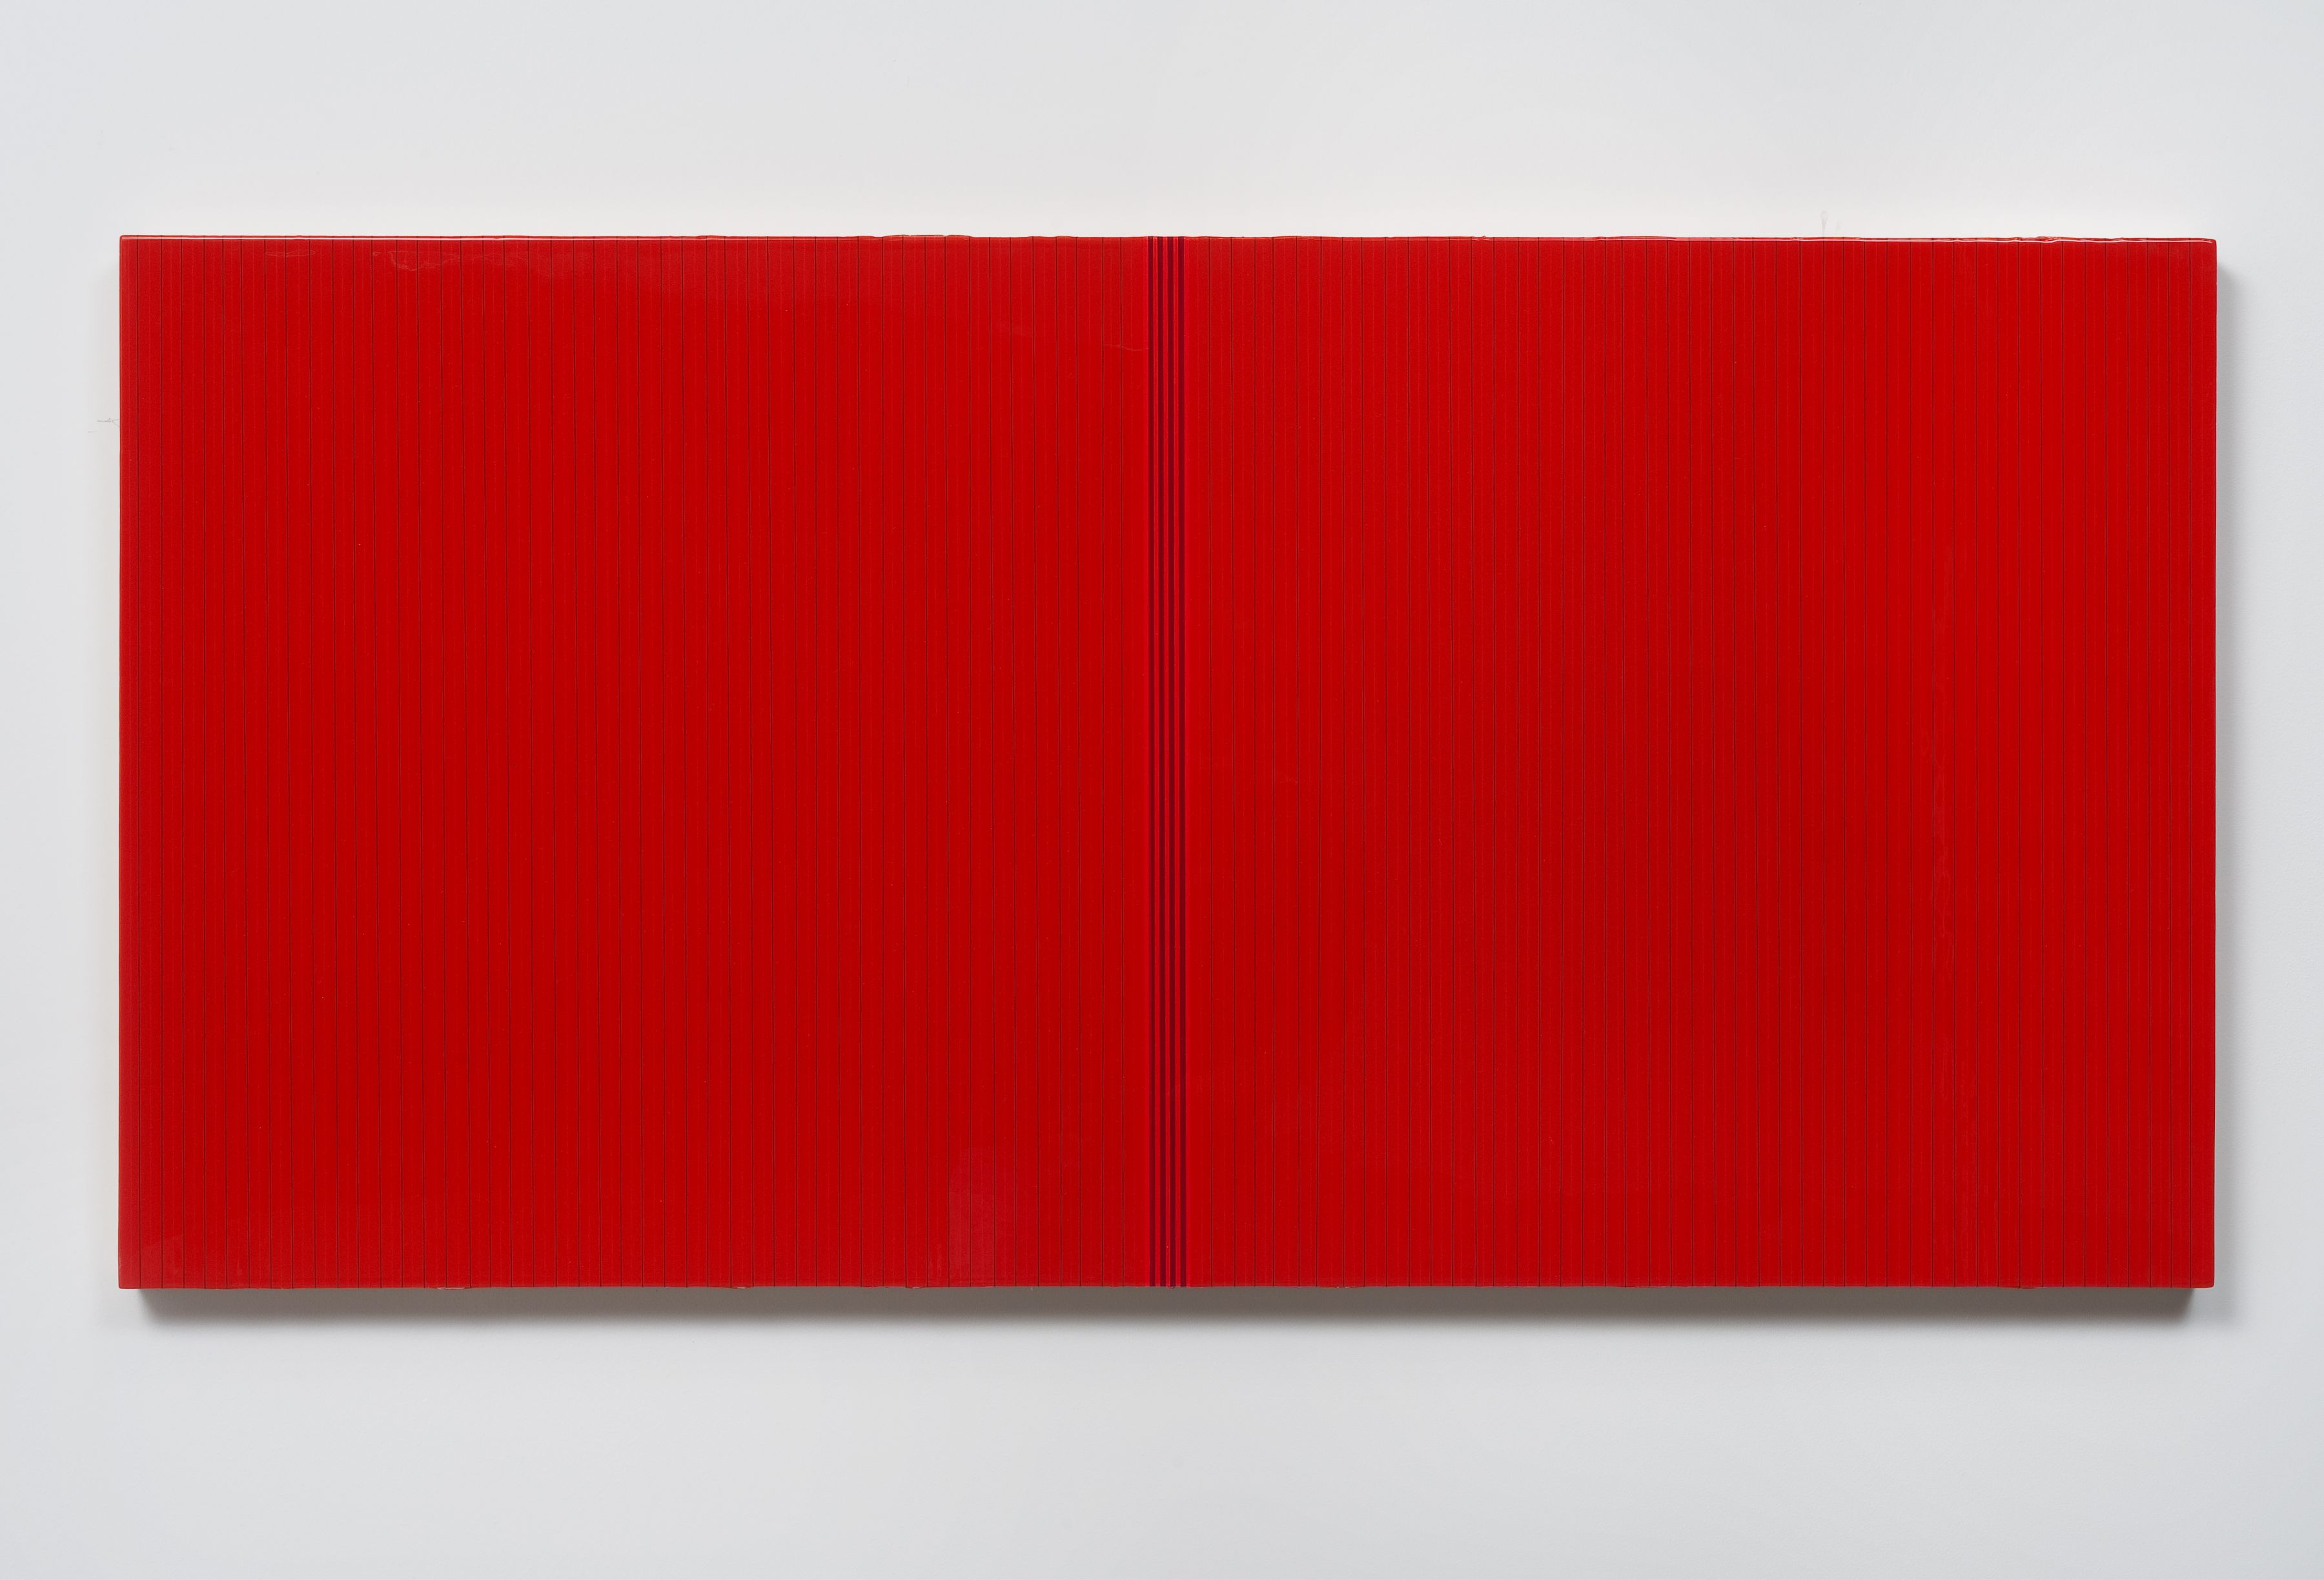 Untitled (red poly), 2012